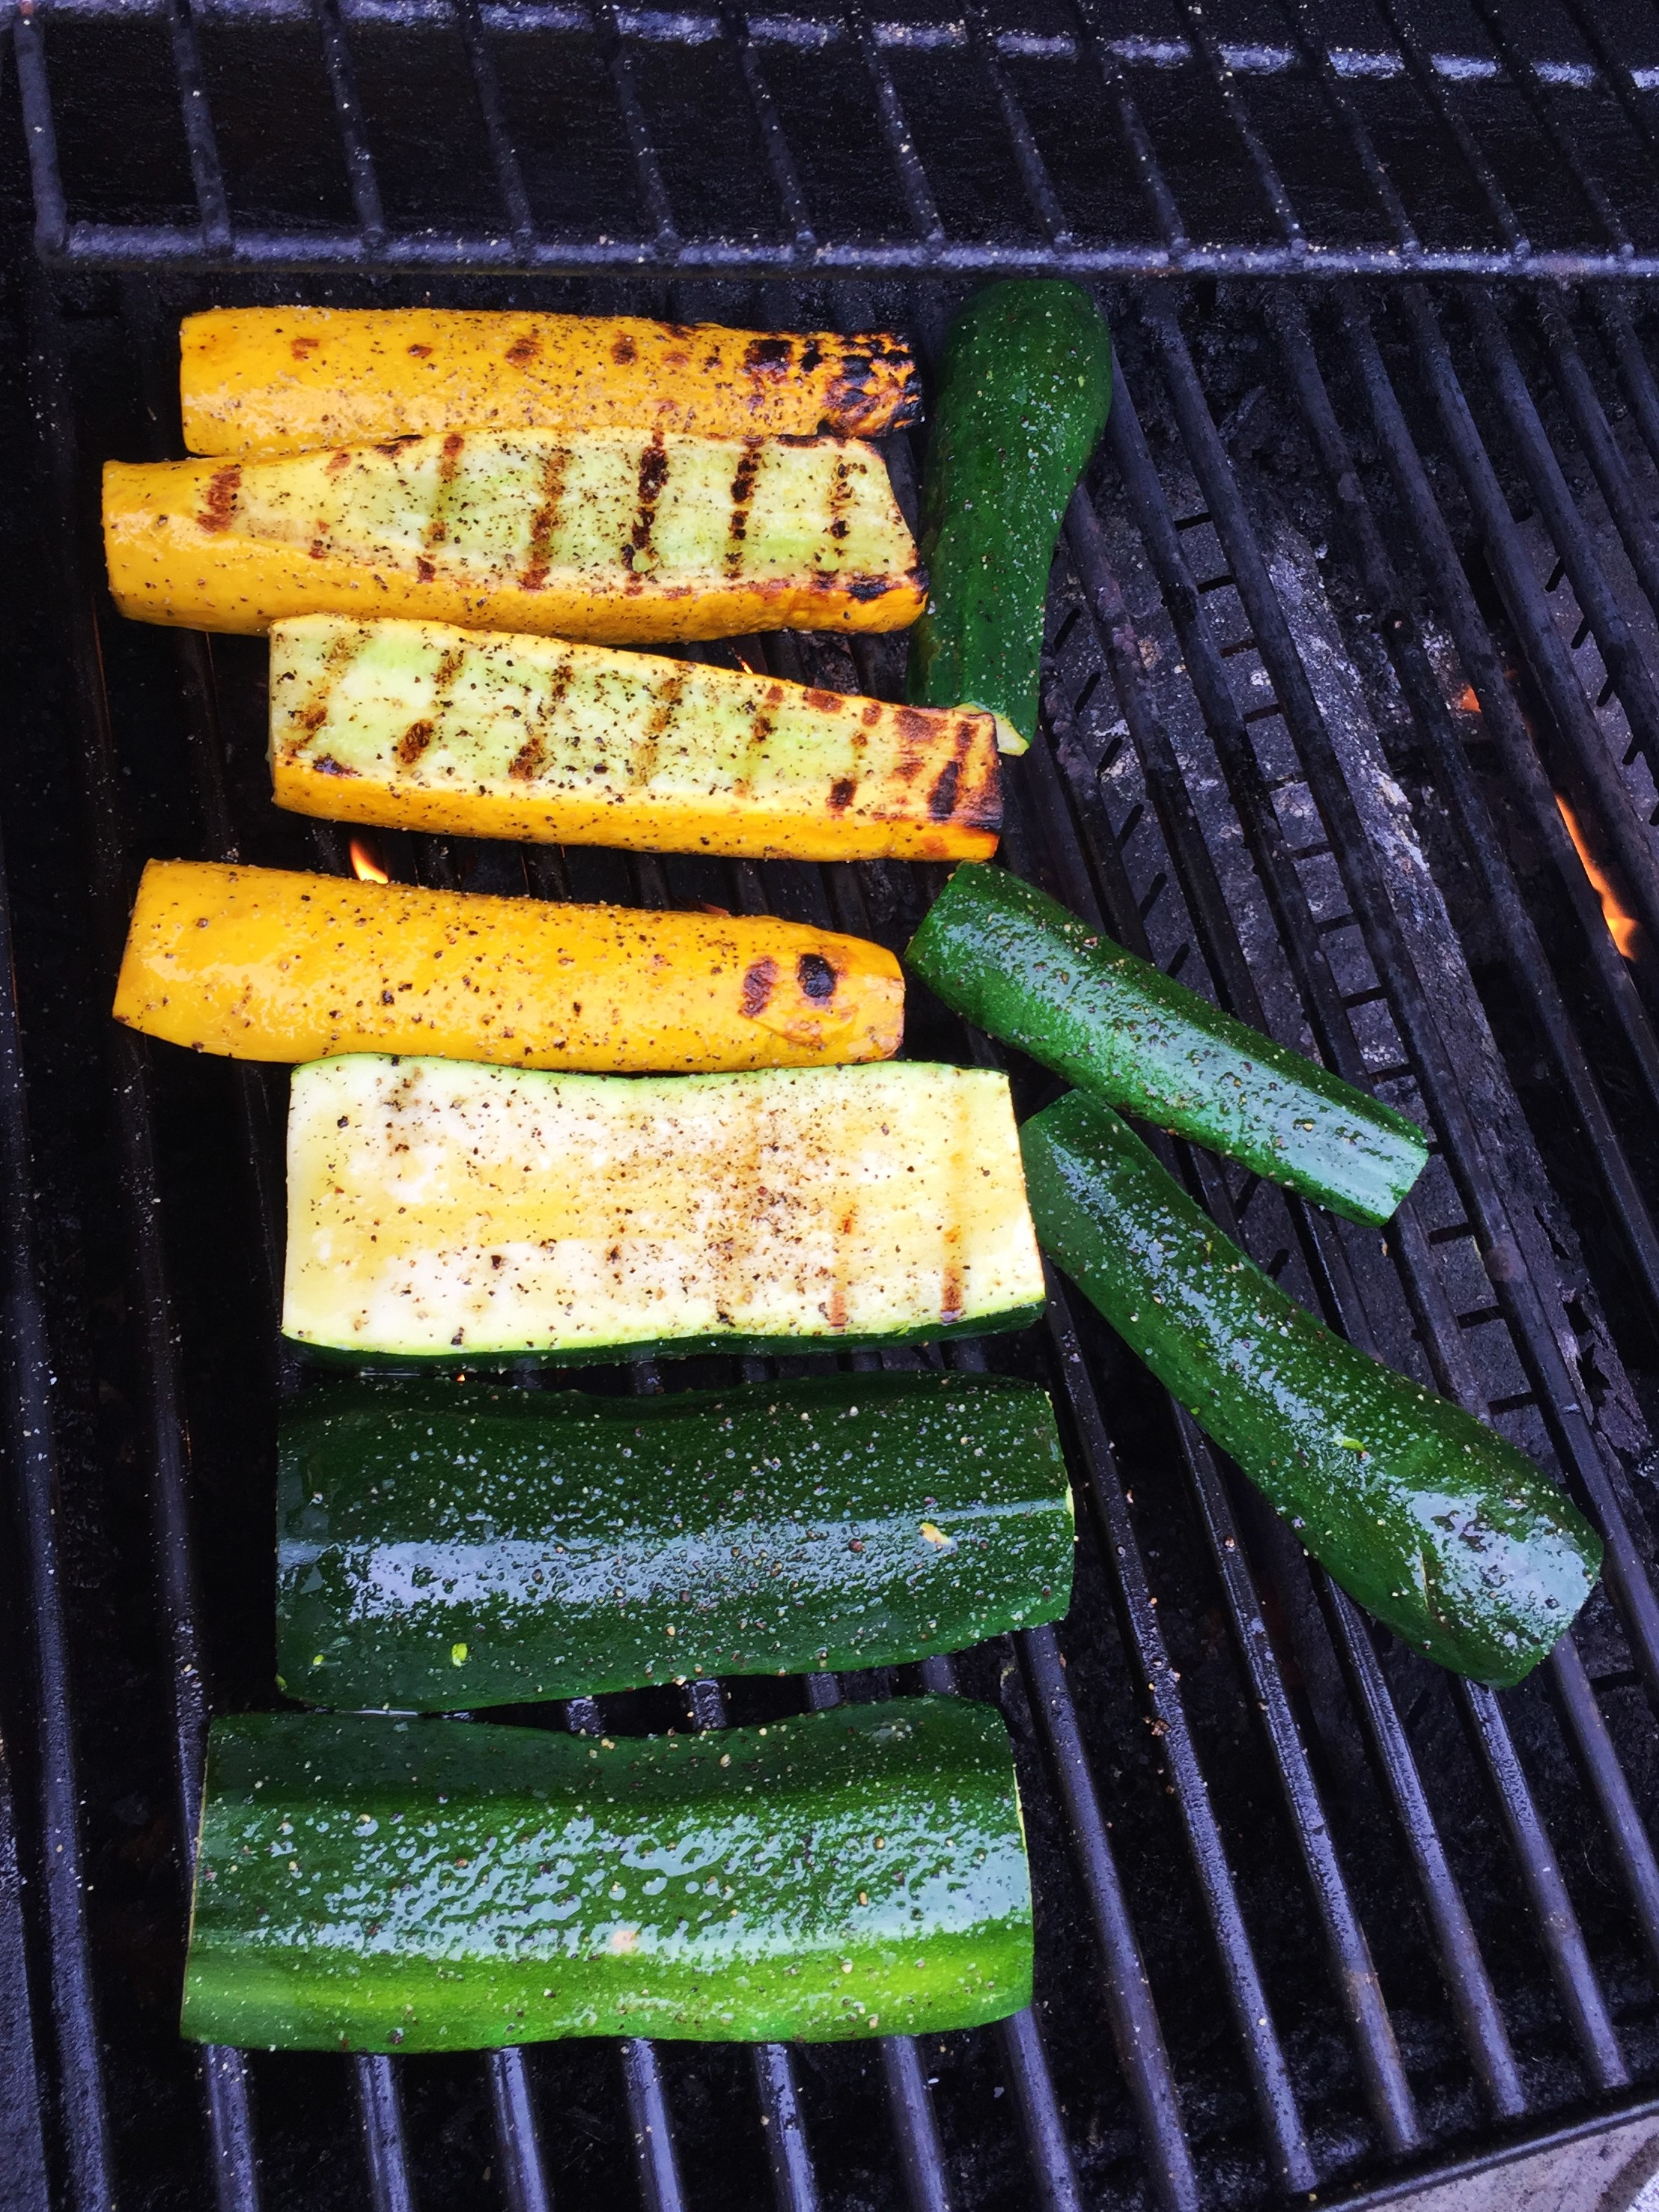 Zucchini cut into planks, on the high heat side of the grill. They'll get flipped over again for a little more char before they're done.